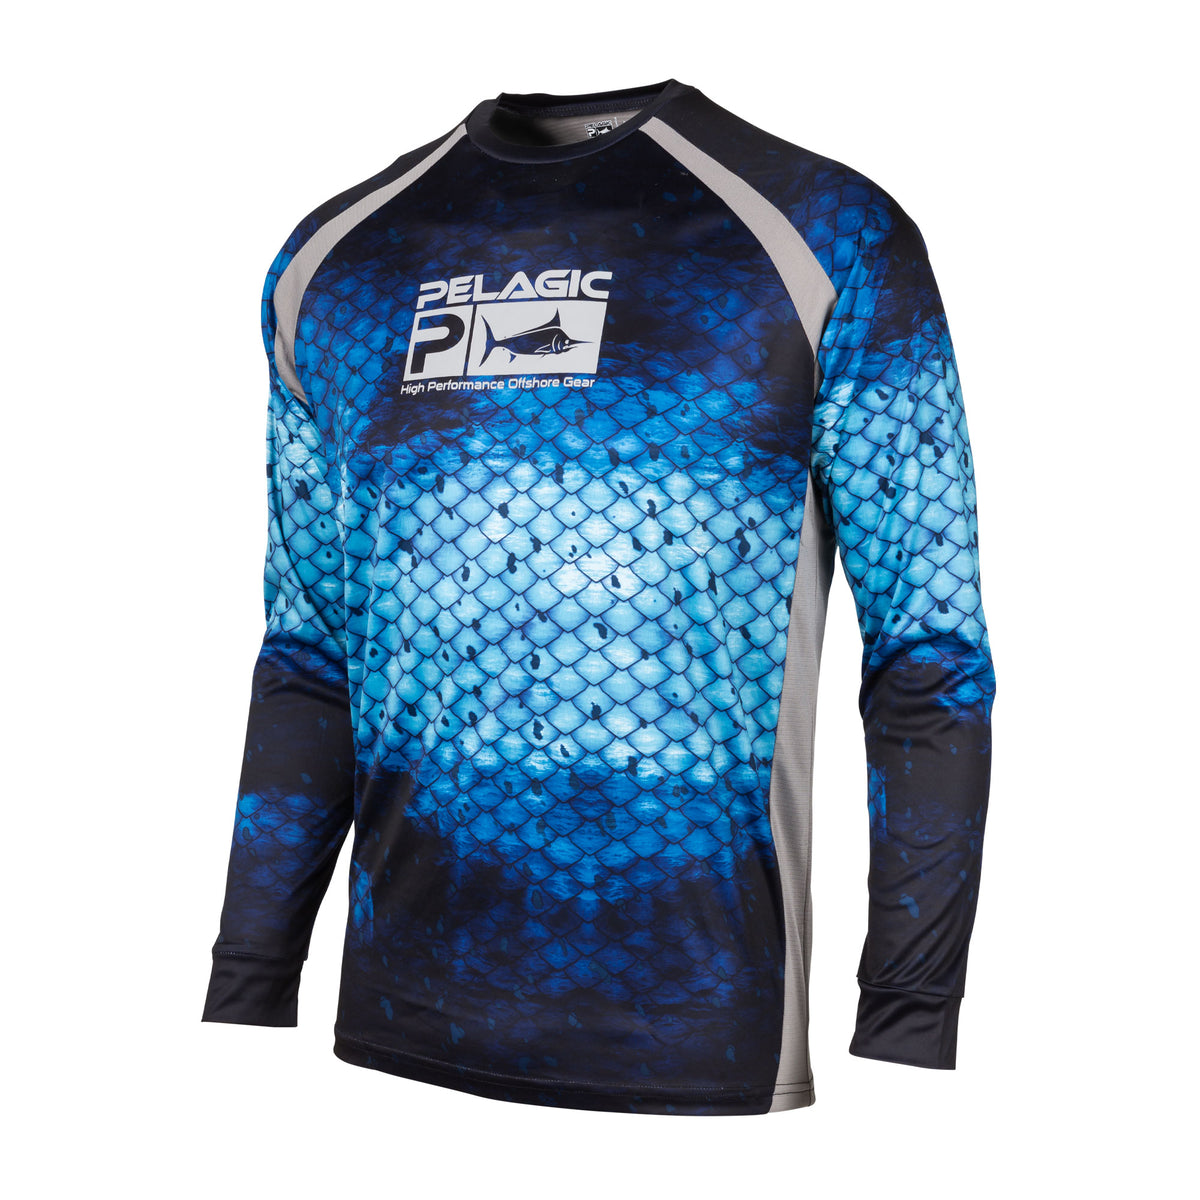 Vaportek Performance Long Sleeve Shirt Big Image - 1